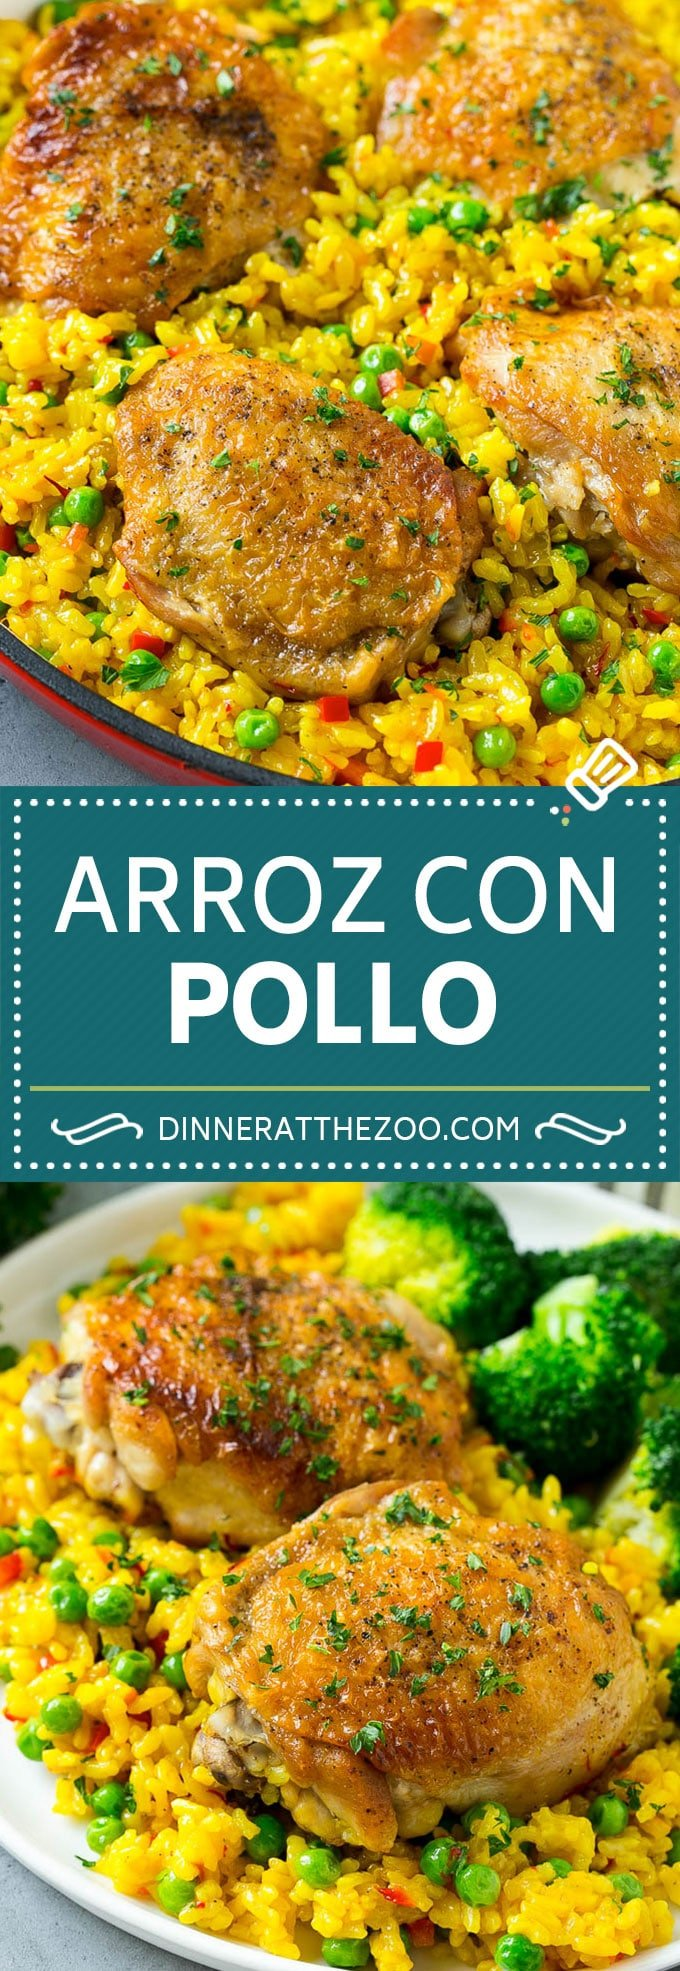 Arroz con Pollo Recipe | Chicken and Rice Recipe | Spanish Chicken #chicken #rice #onepot #dinner #dinneratthezoo #glutenfree